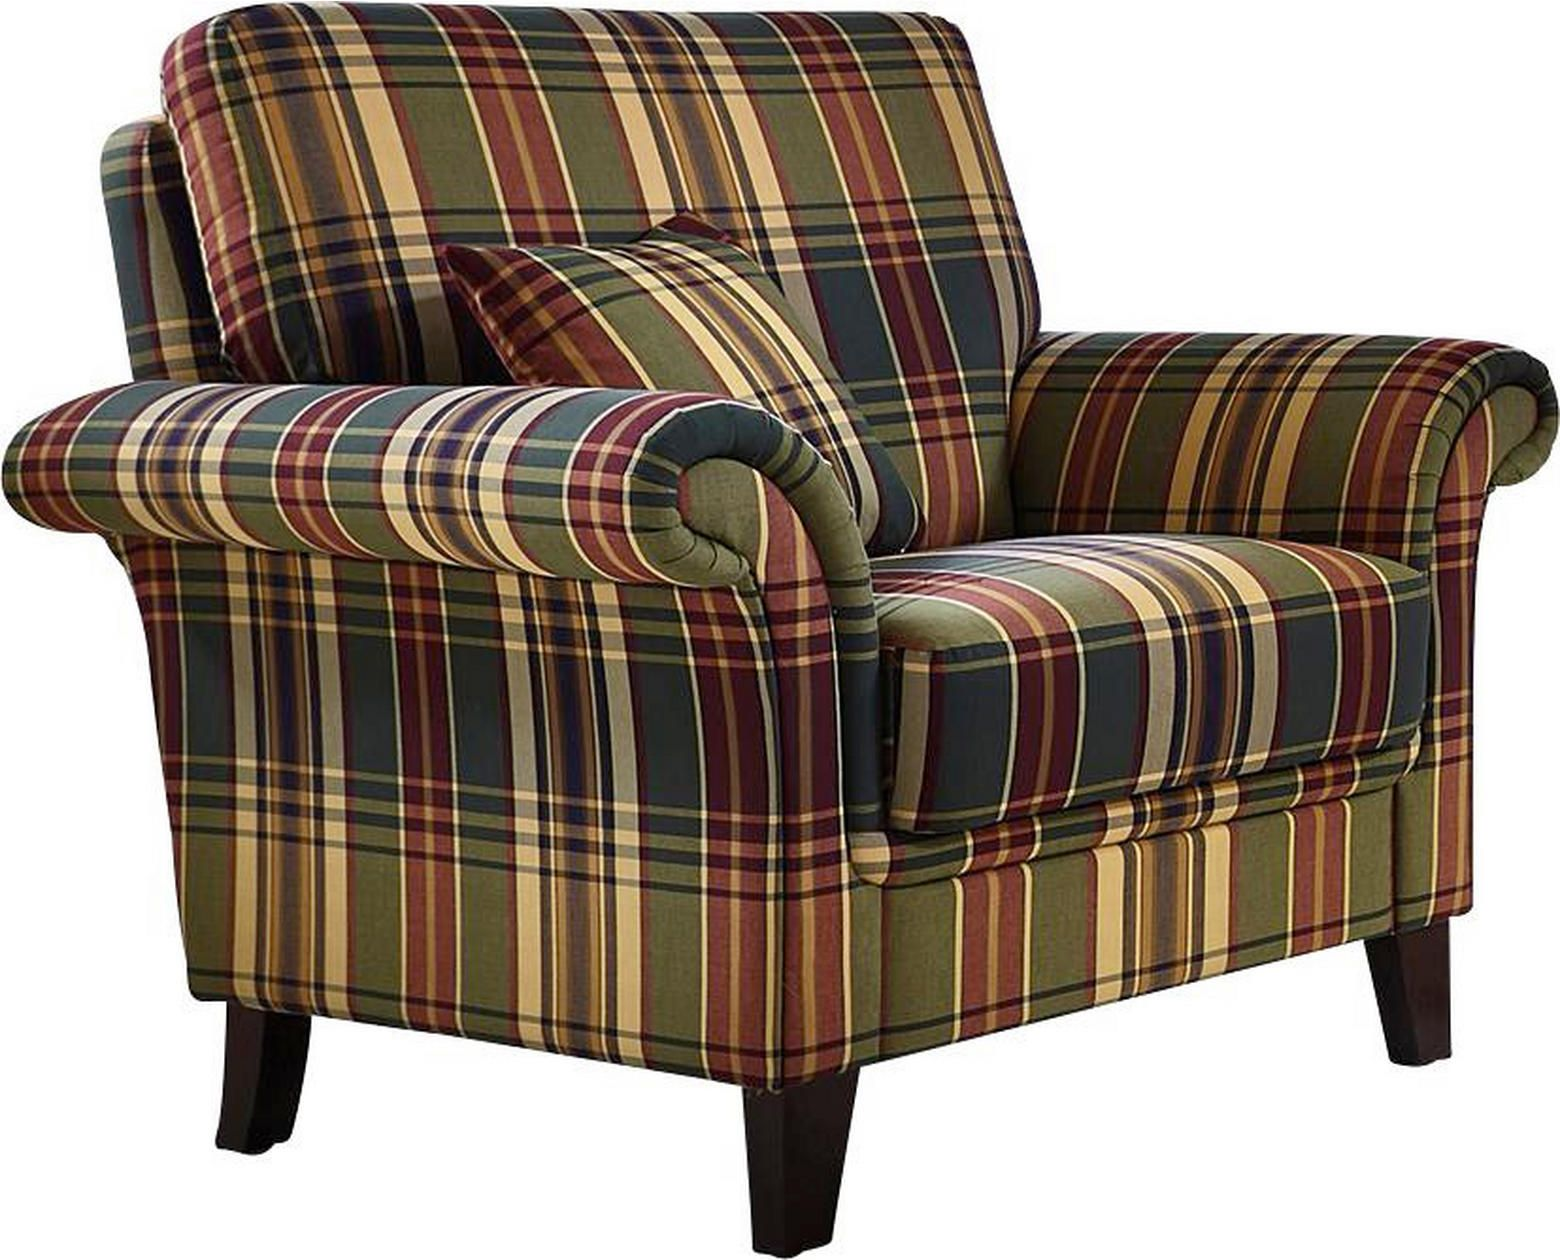 Xxxlutz Sessel Sessel Multicolor Axel Datscha Armchair Home Decor Und